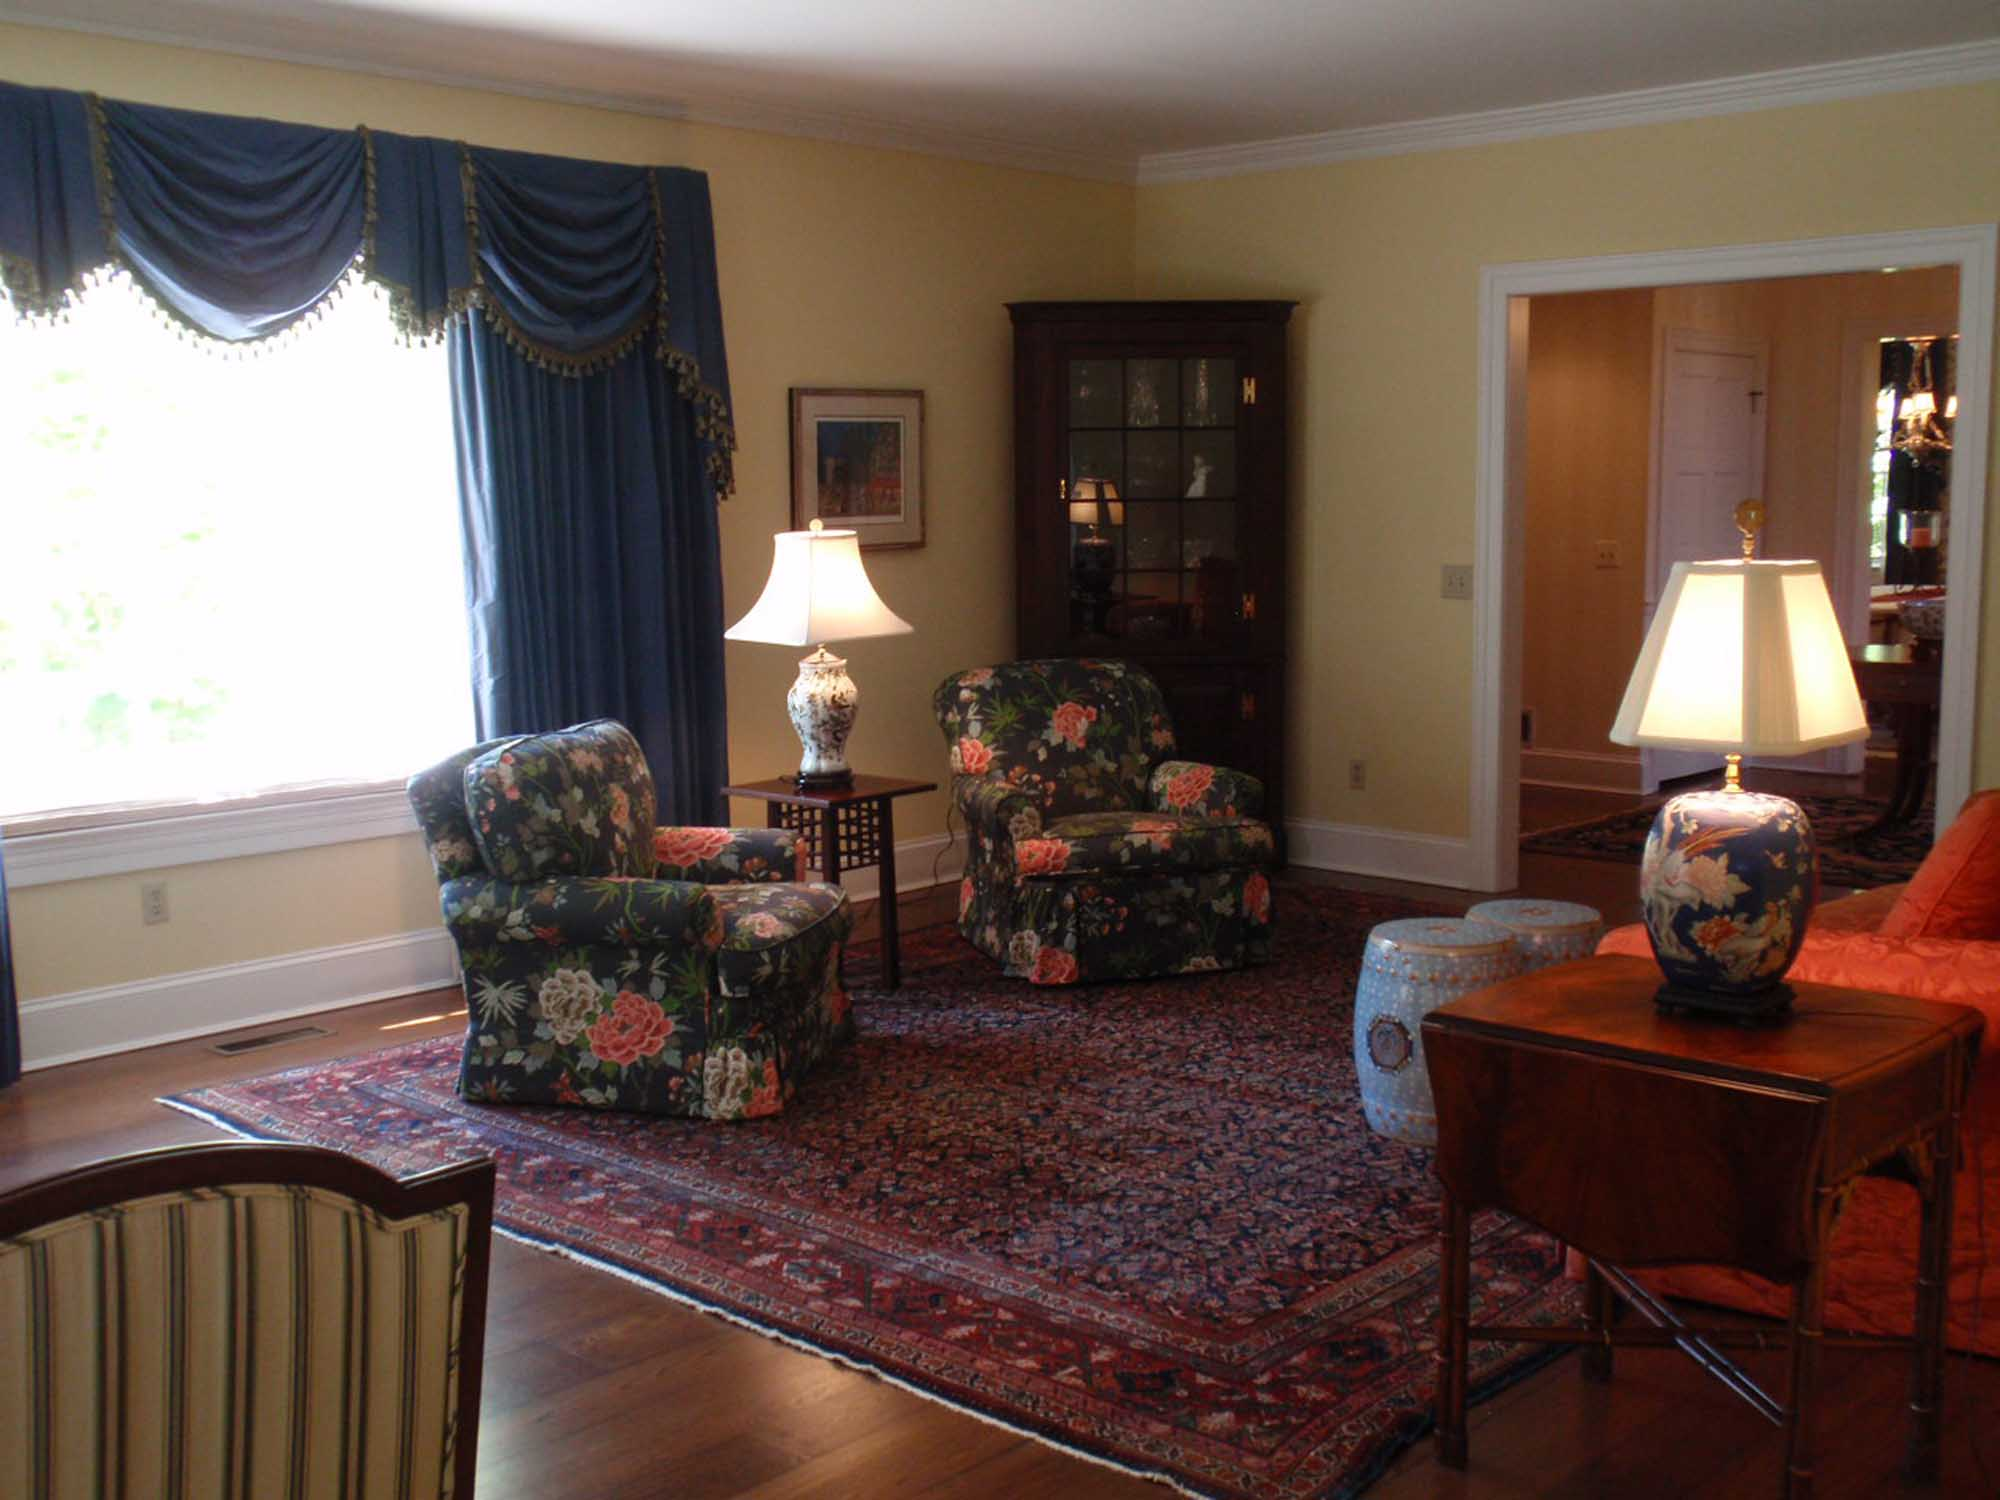 Living room with blue curtains and two couches in flower prints